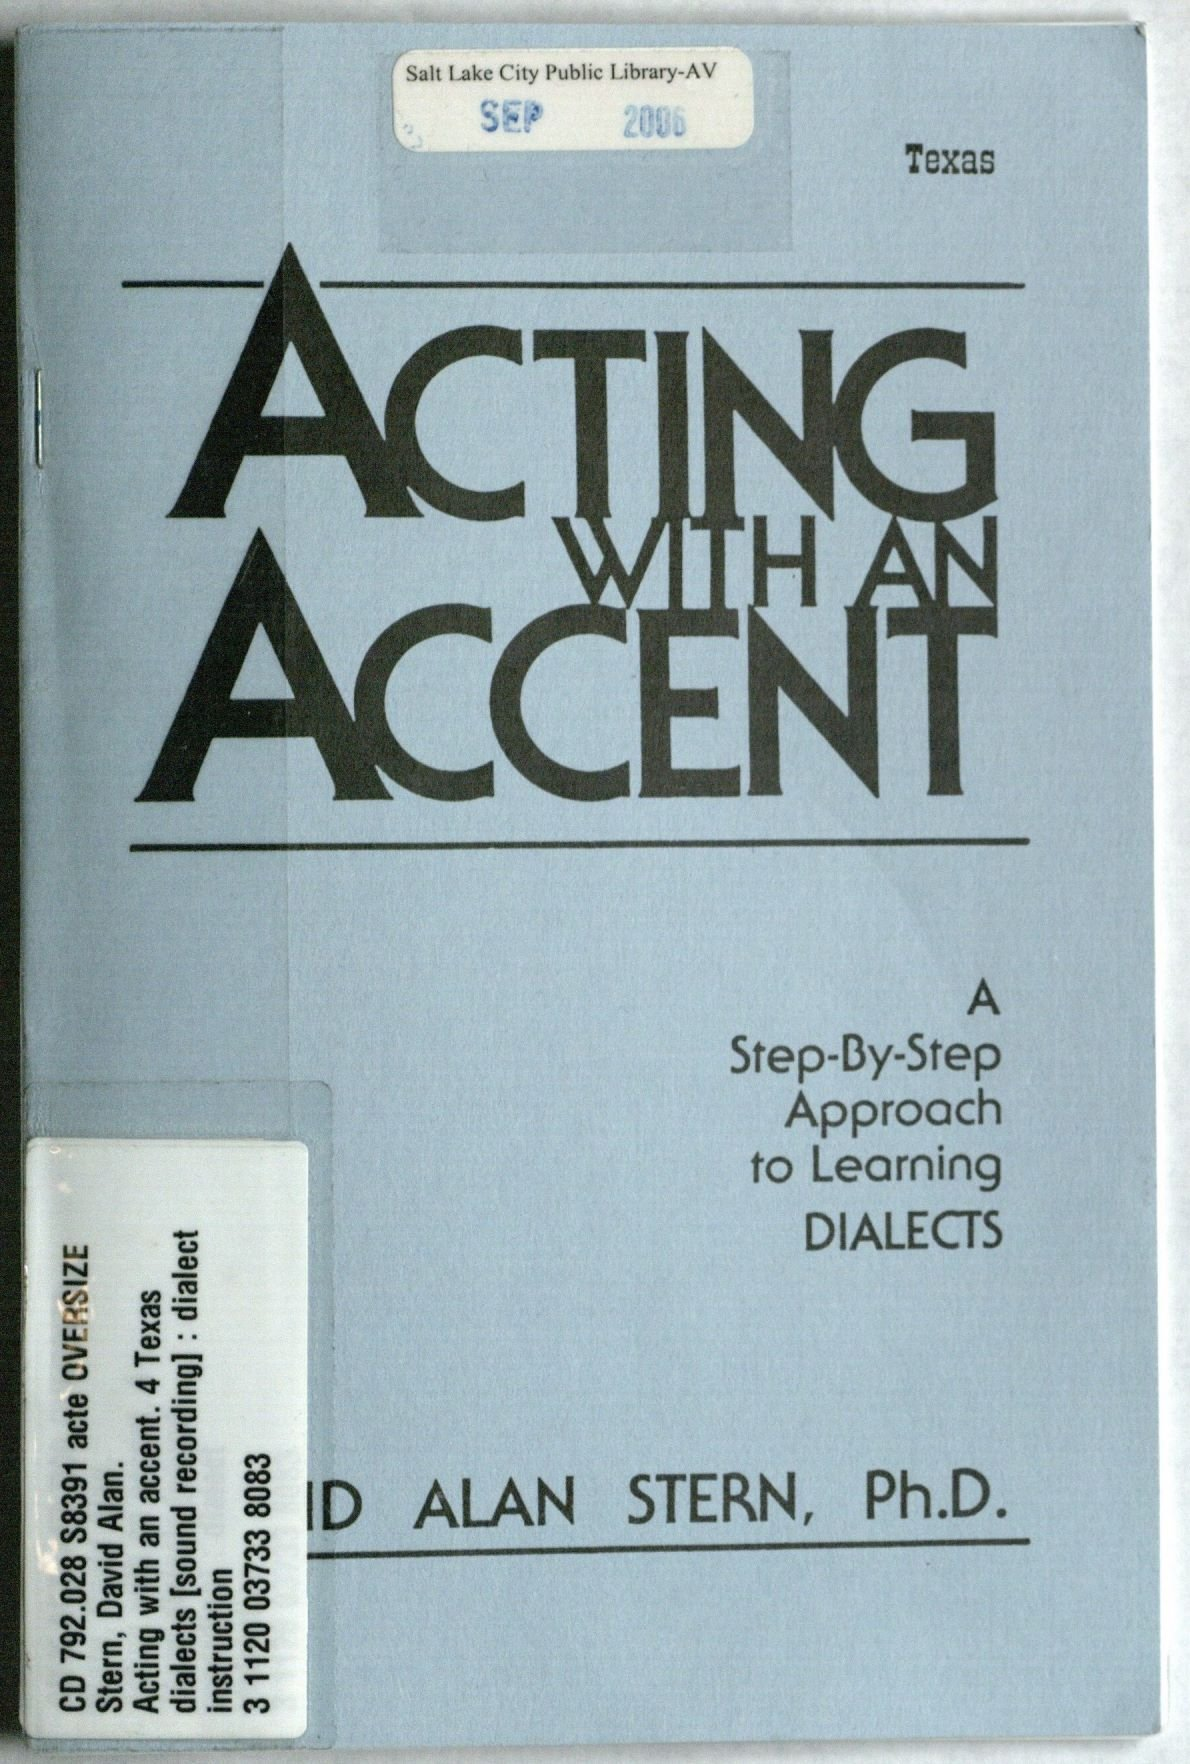 Acting With An Accent Texas Dr David Alan Stern D A Stern N A 9780926862203 Amazon Com Books